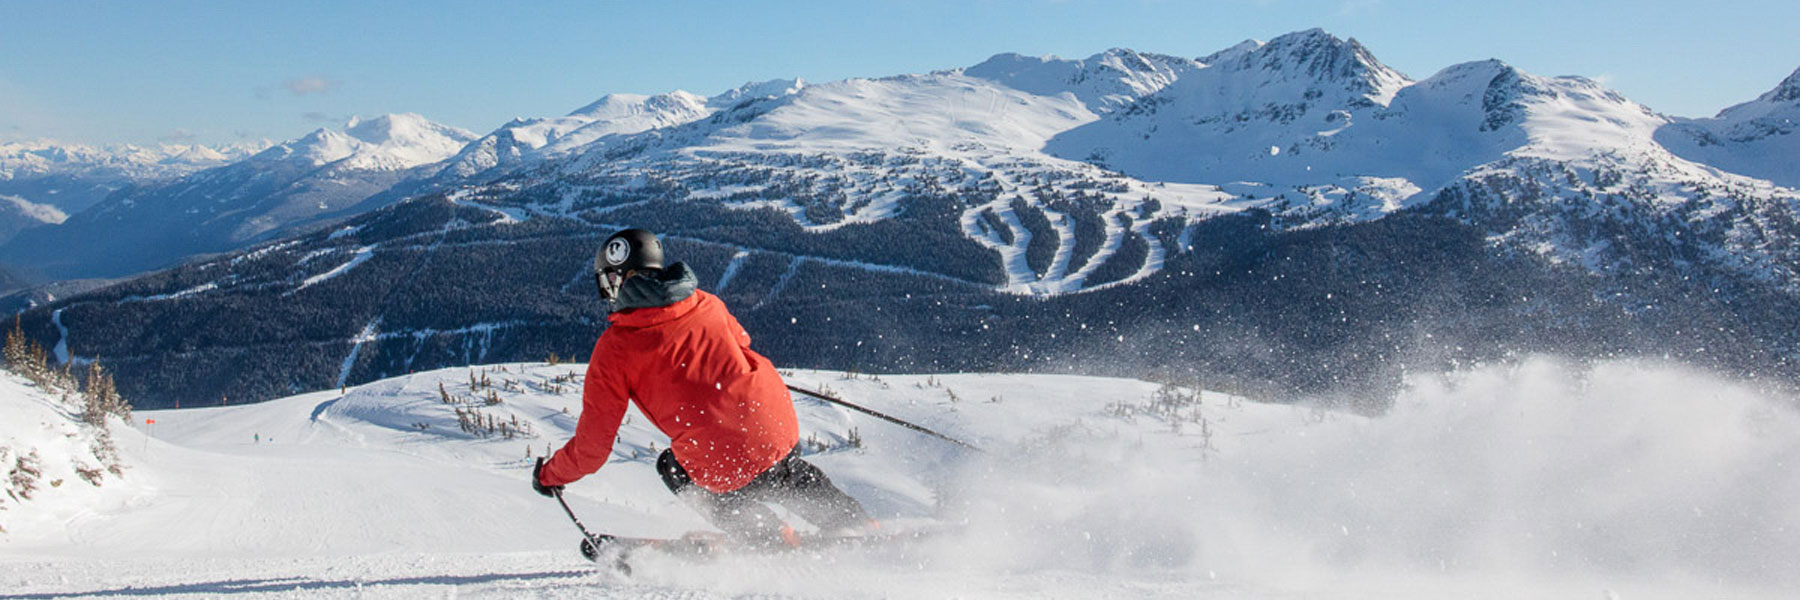 Whistler / Blackcomb, British Columbia, Canada Ski Vacation: Save 30 - 35% at ResortQuest Whistler properties!